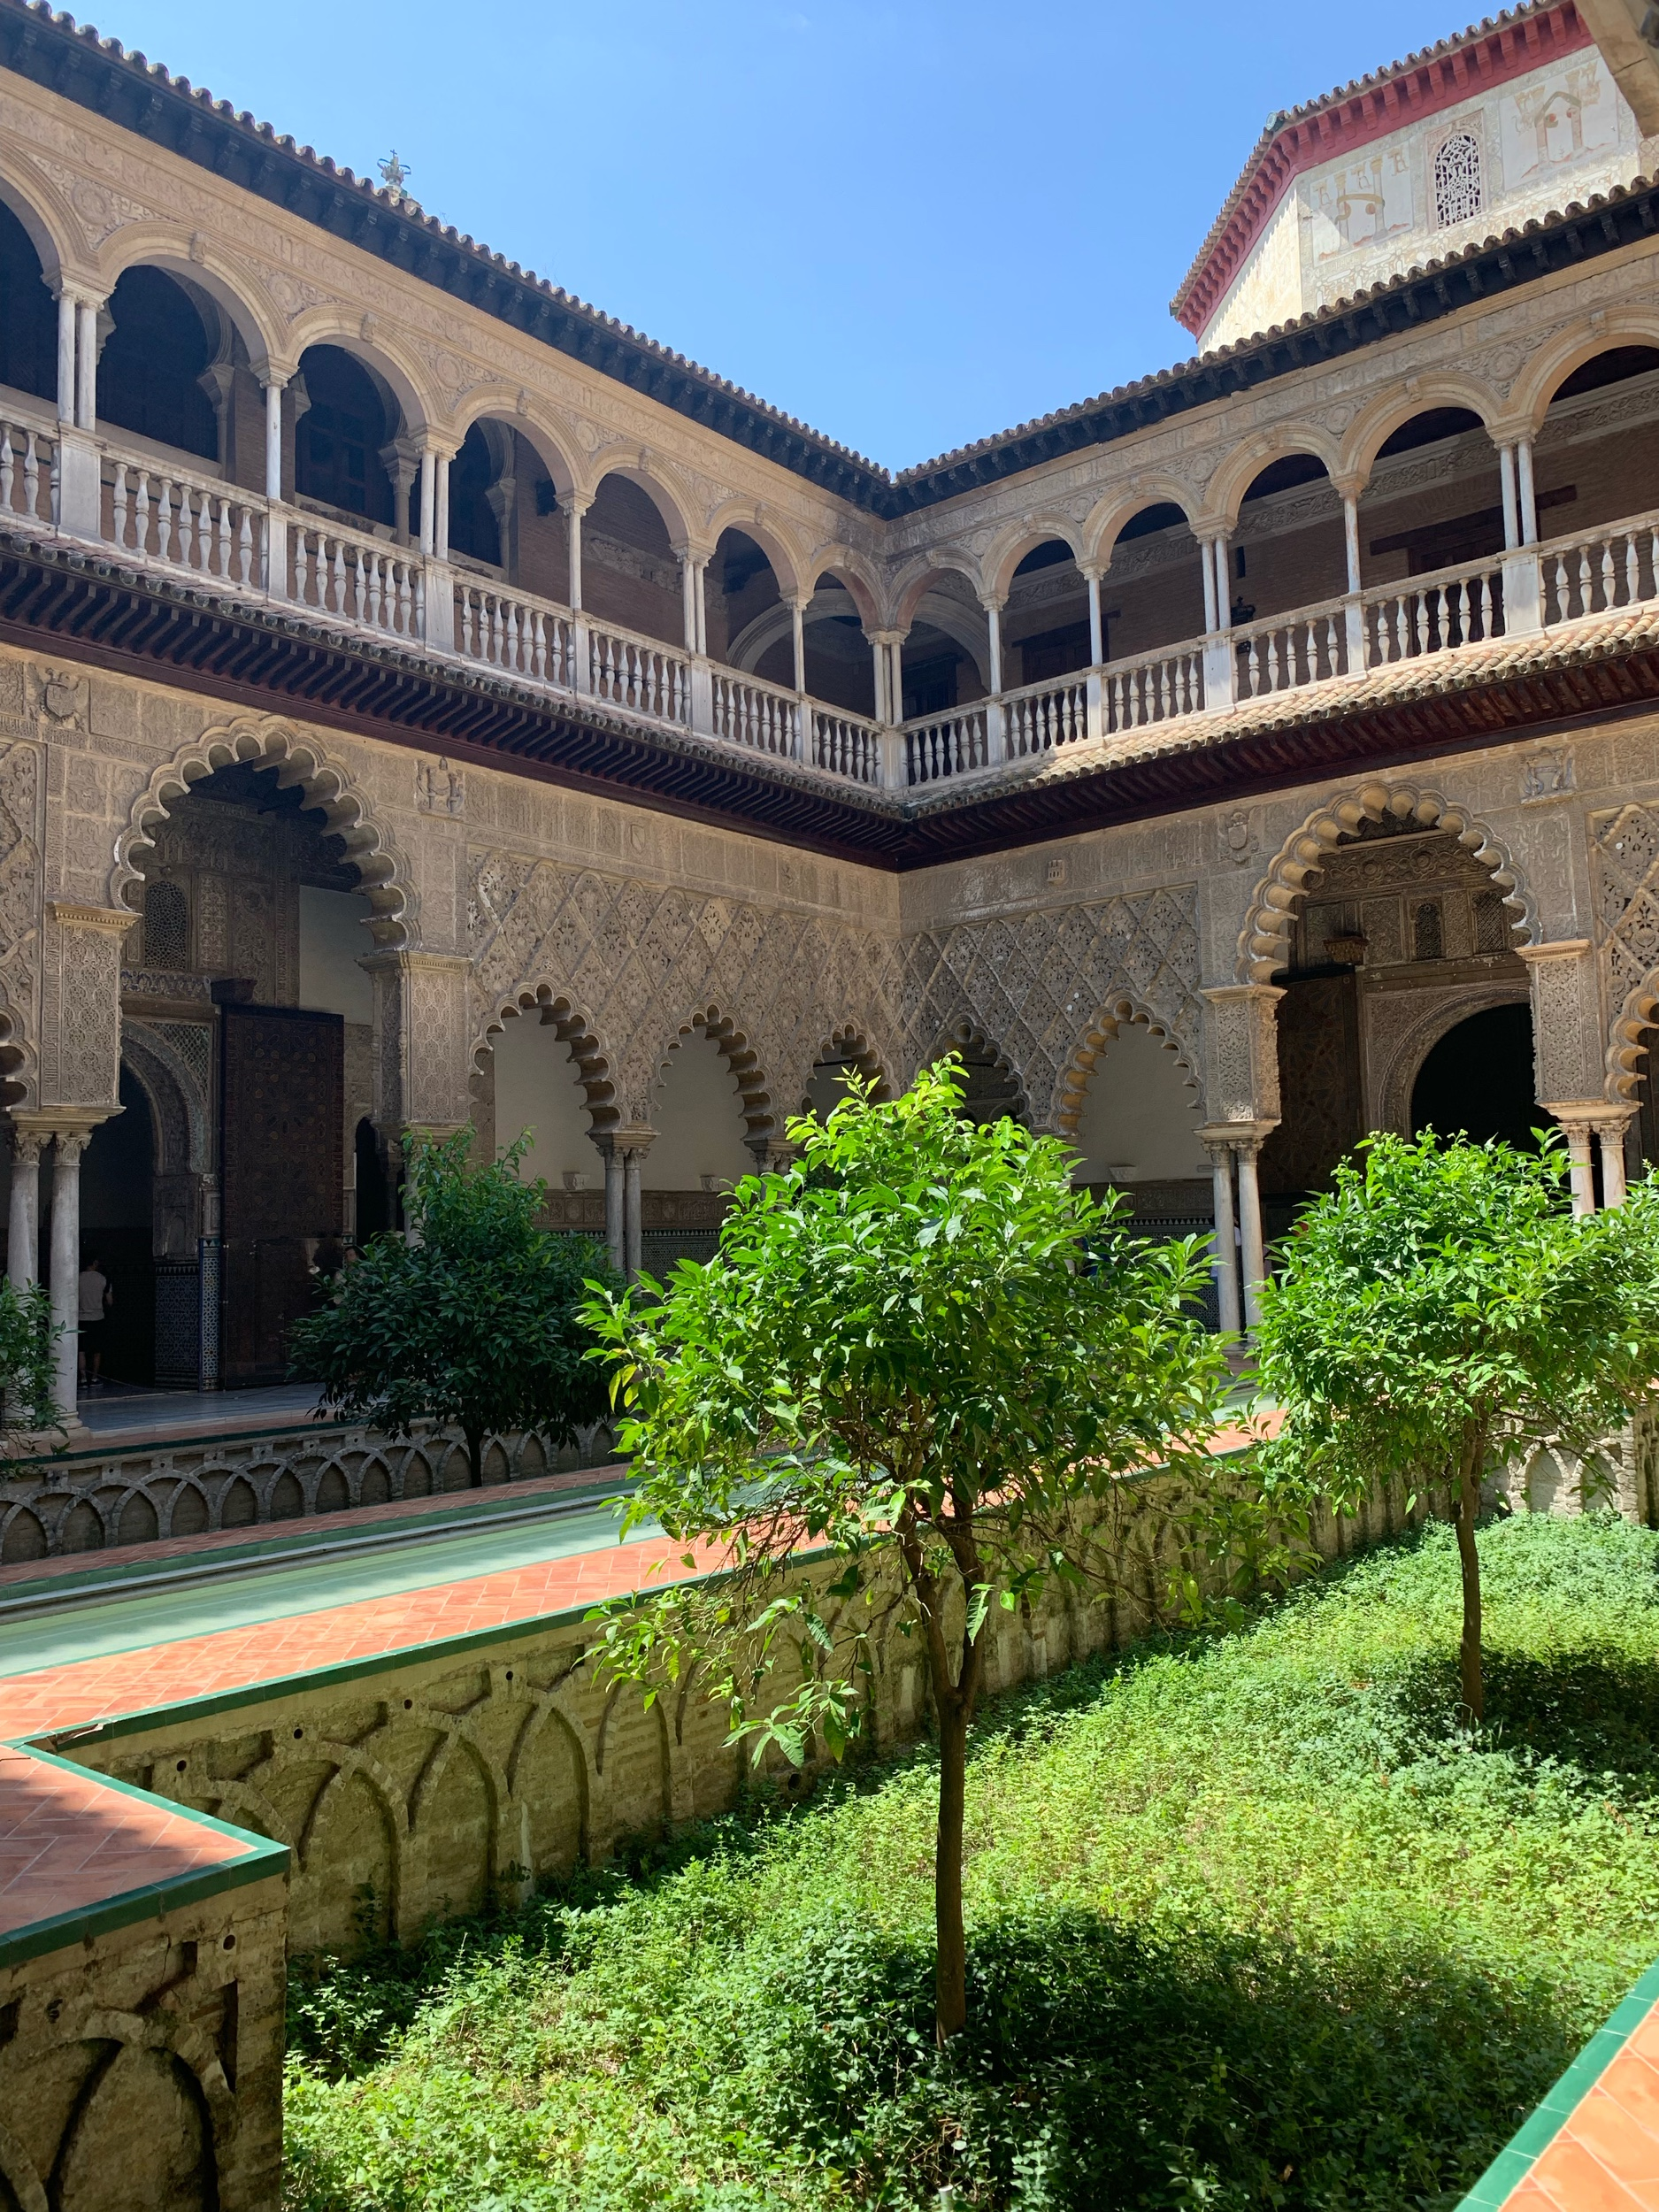 Pedro I Palace in the Alcazar